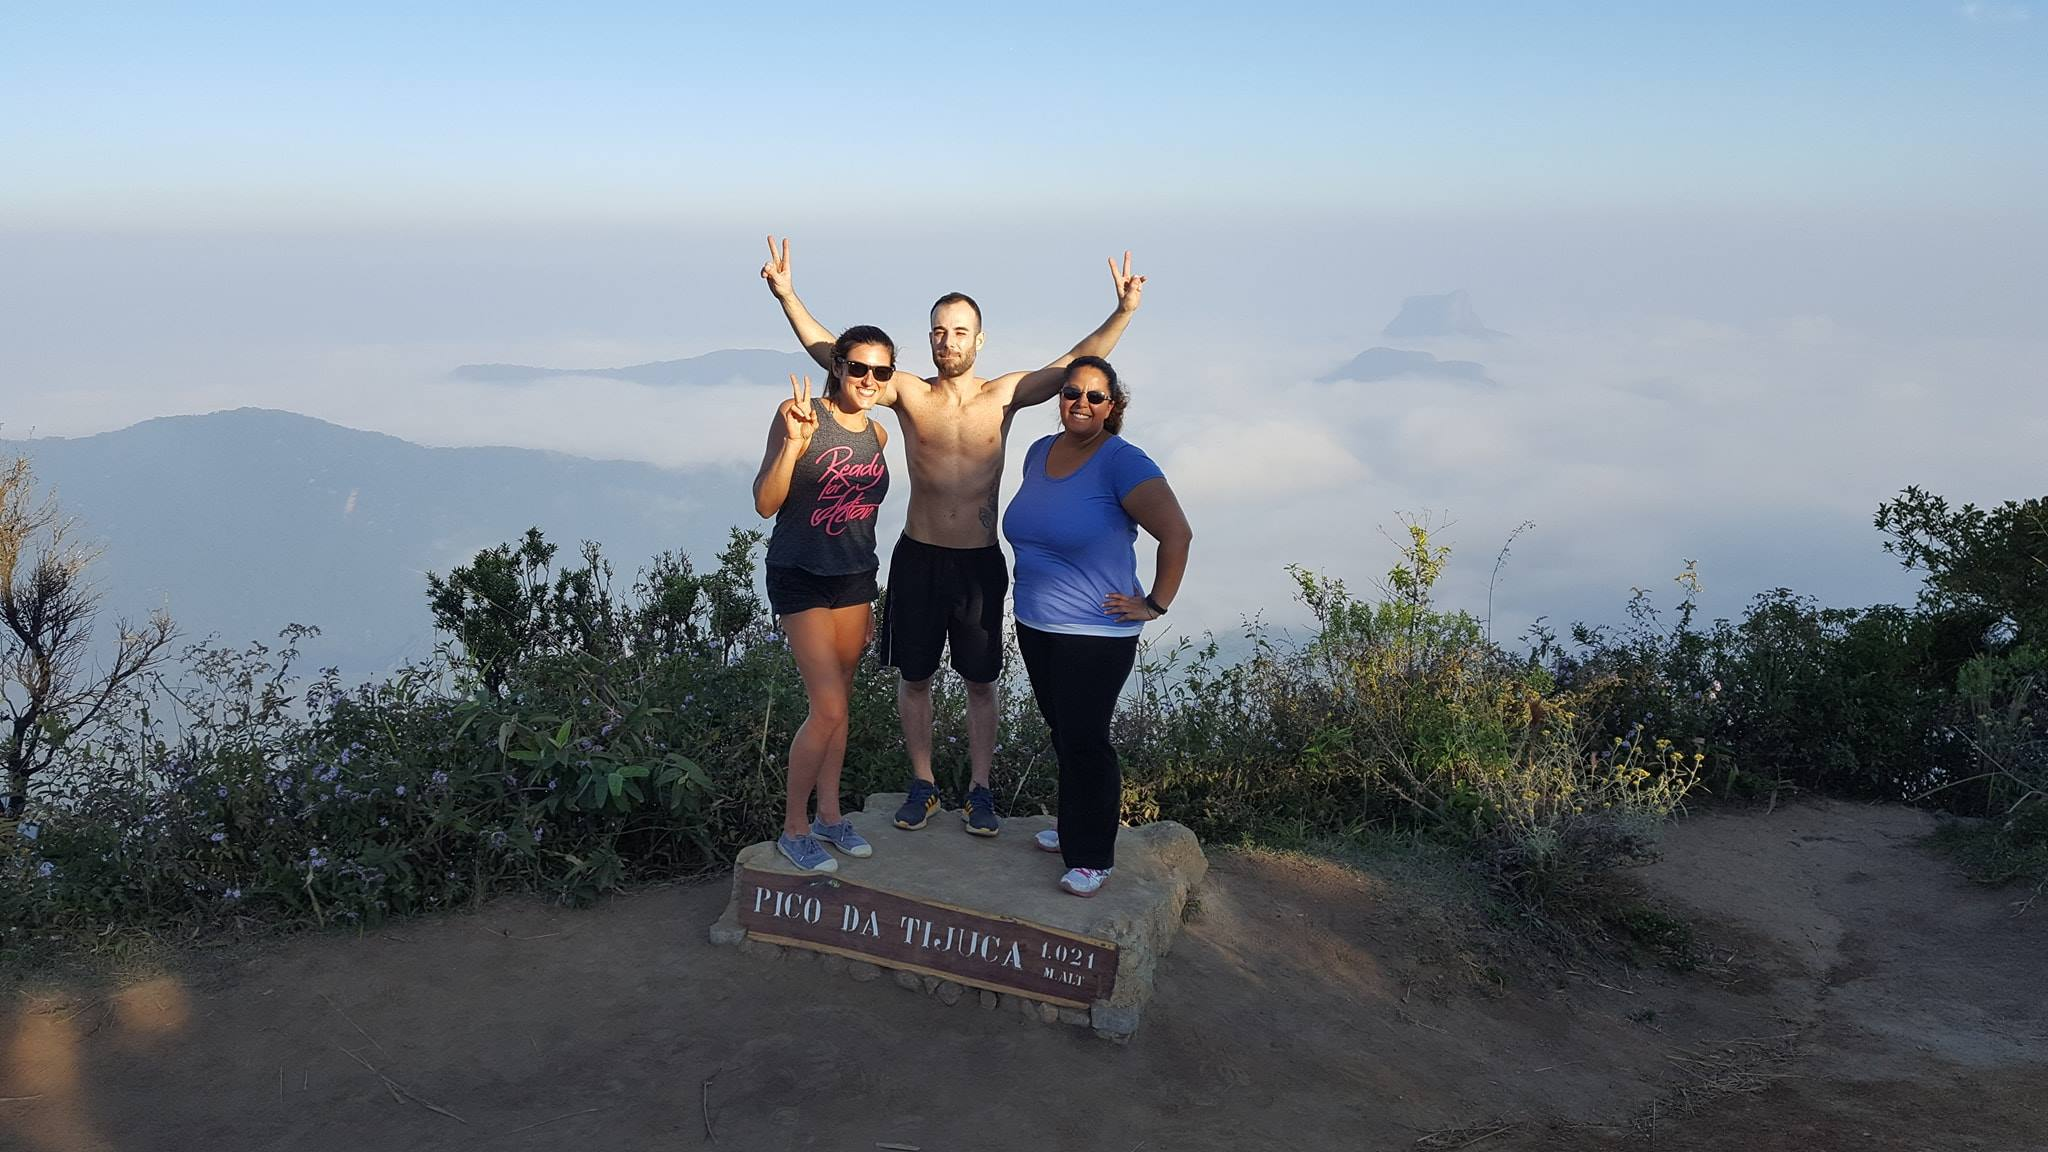 Hiking to Pico da Tijuca. We didi it!